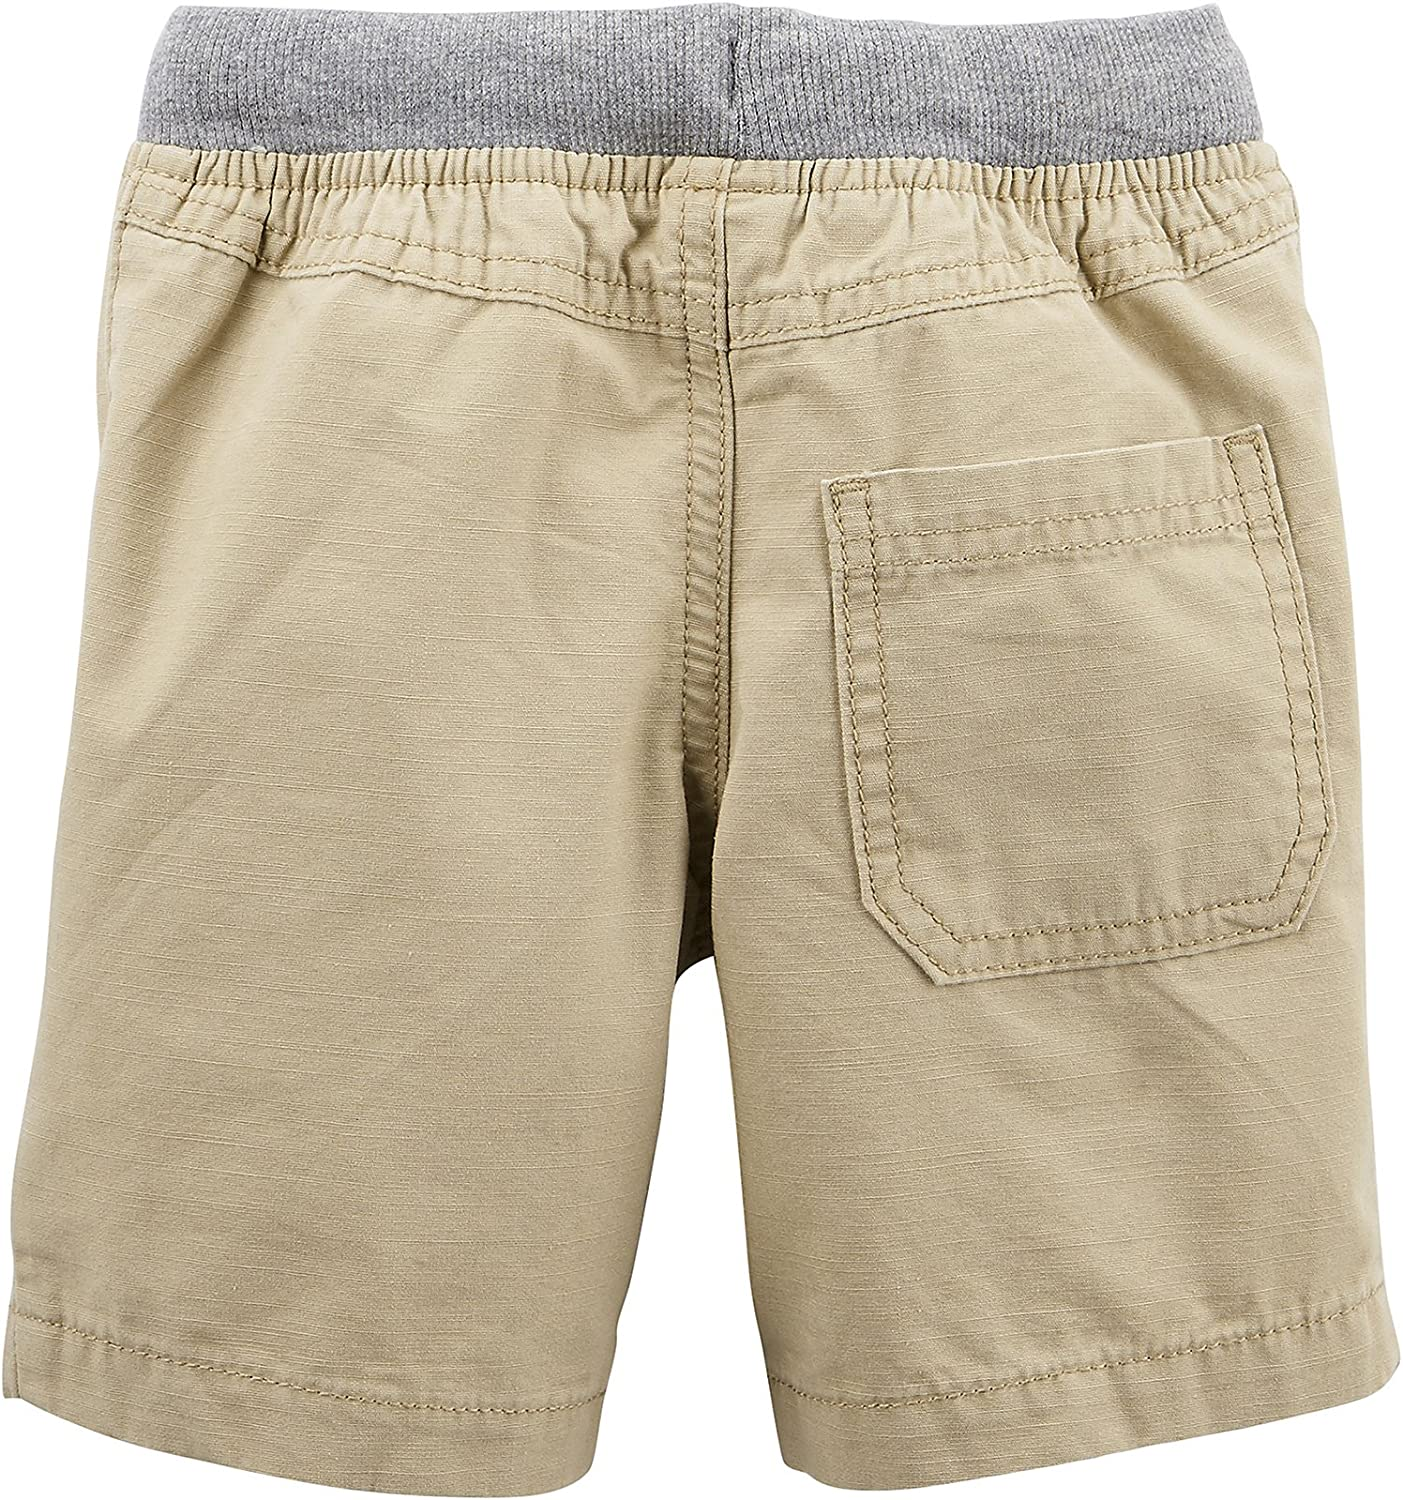 Carters Baby Boys Easy Pull-On Dock Shorts Khaki 9 Months